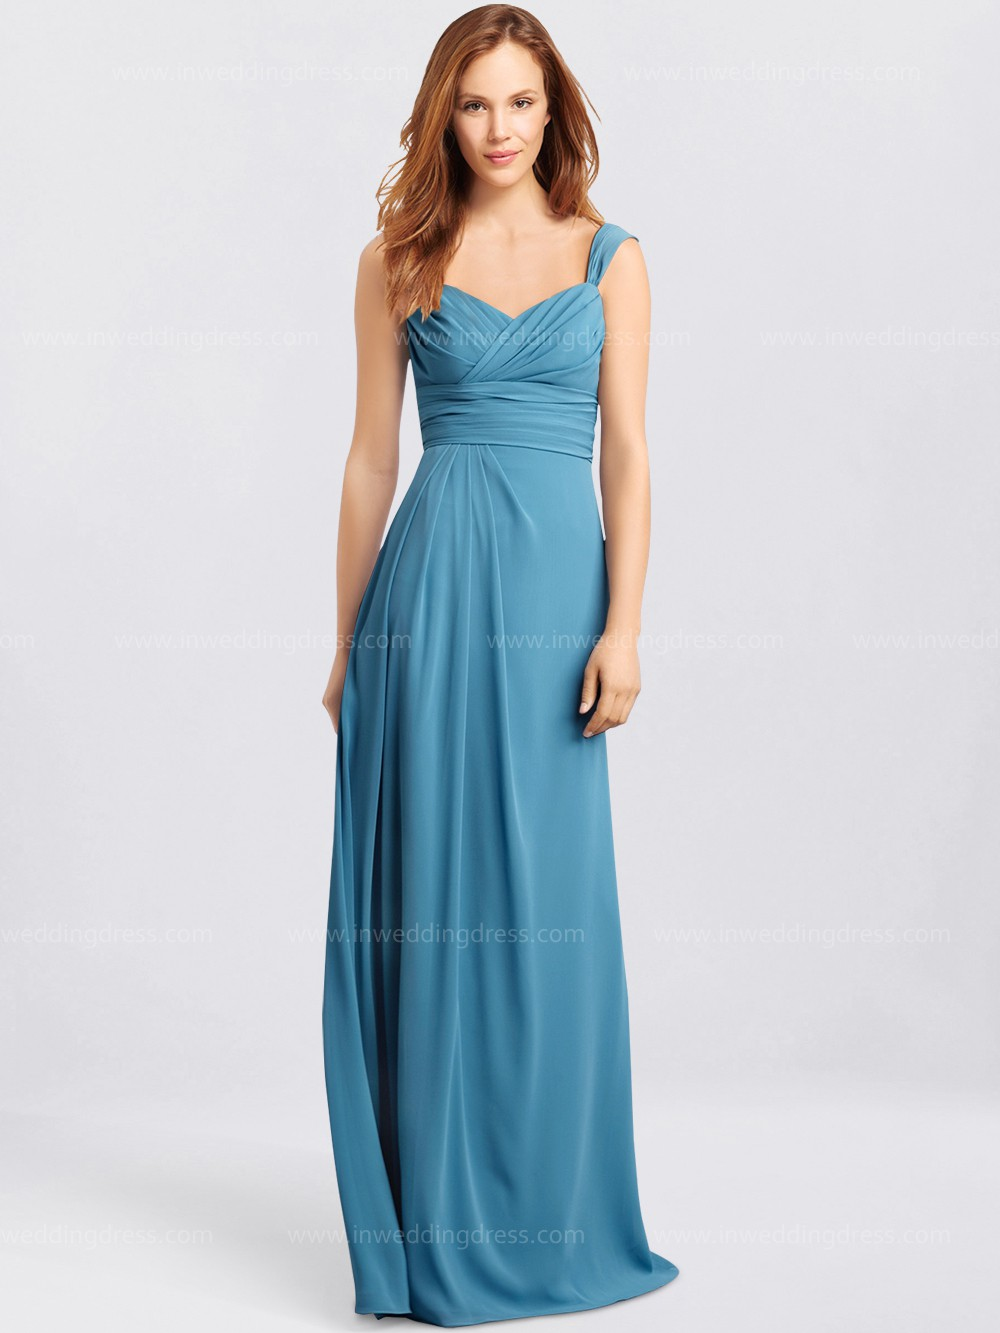 Formal Chiffon Maids Dresses with Cap Sleeves